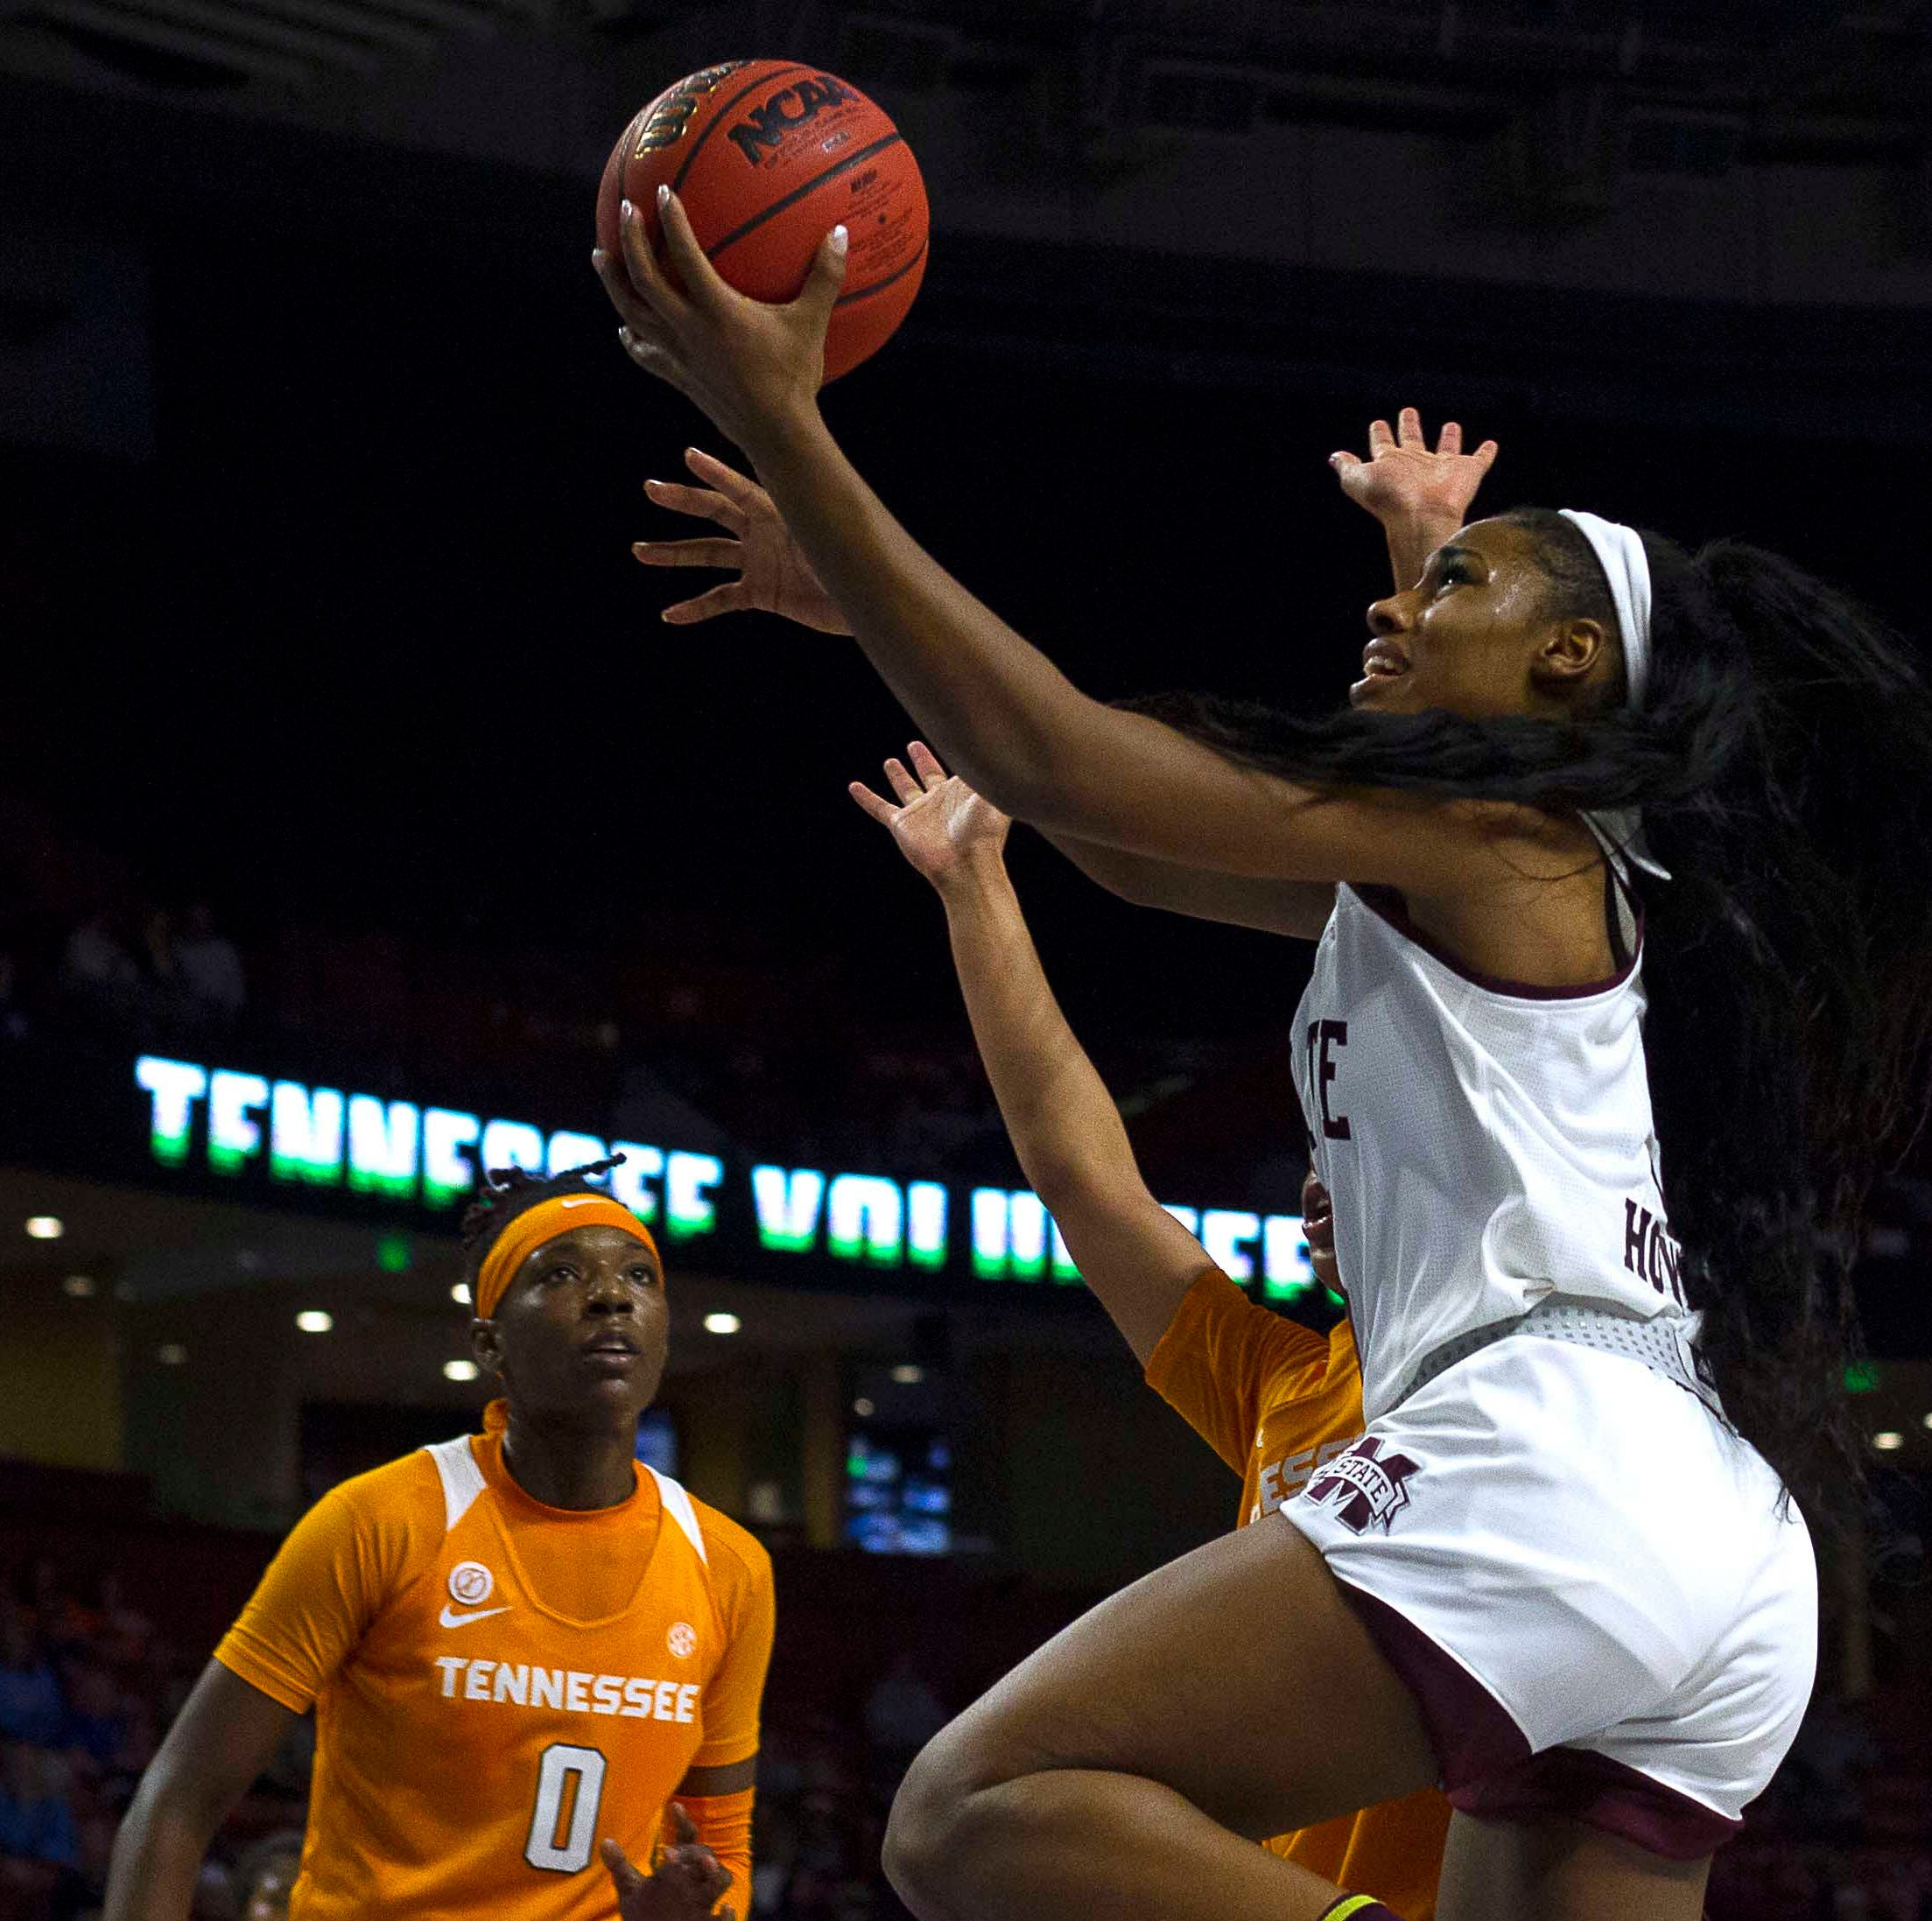 Mississippi State advances to SEC women's basketball tournament semifinals